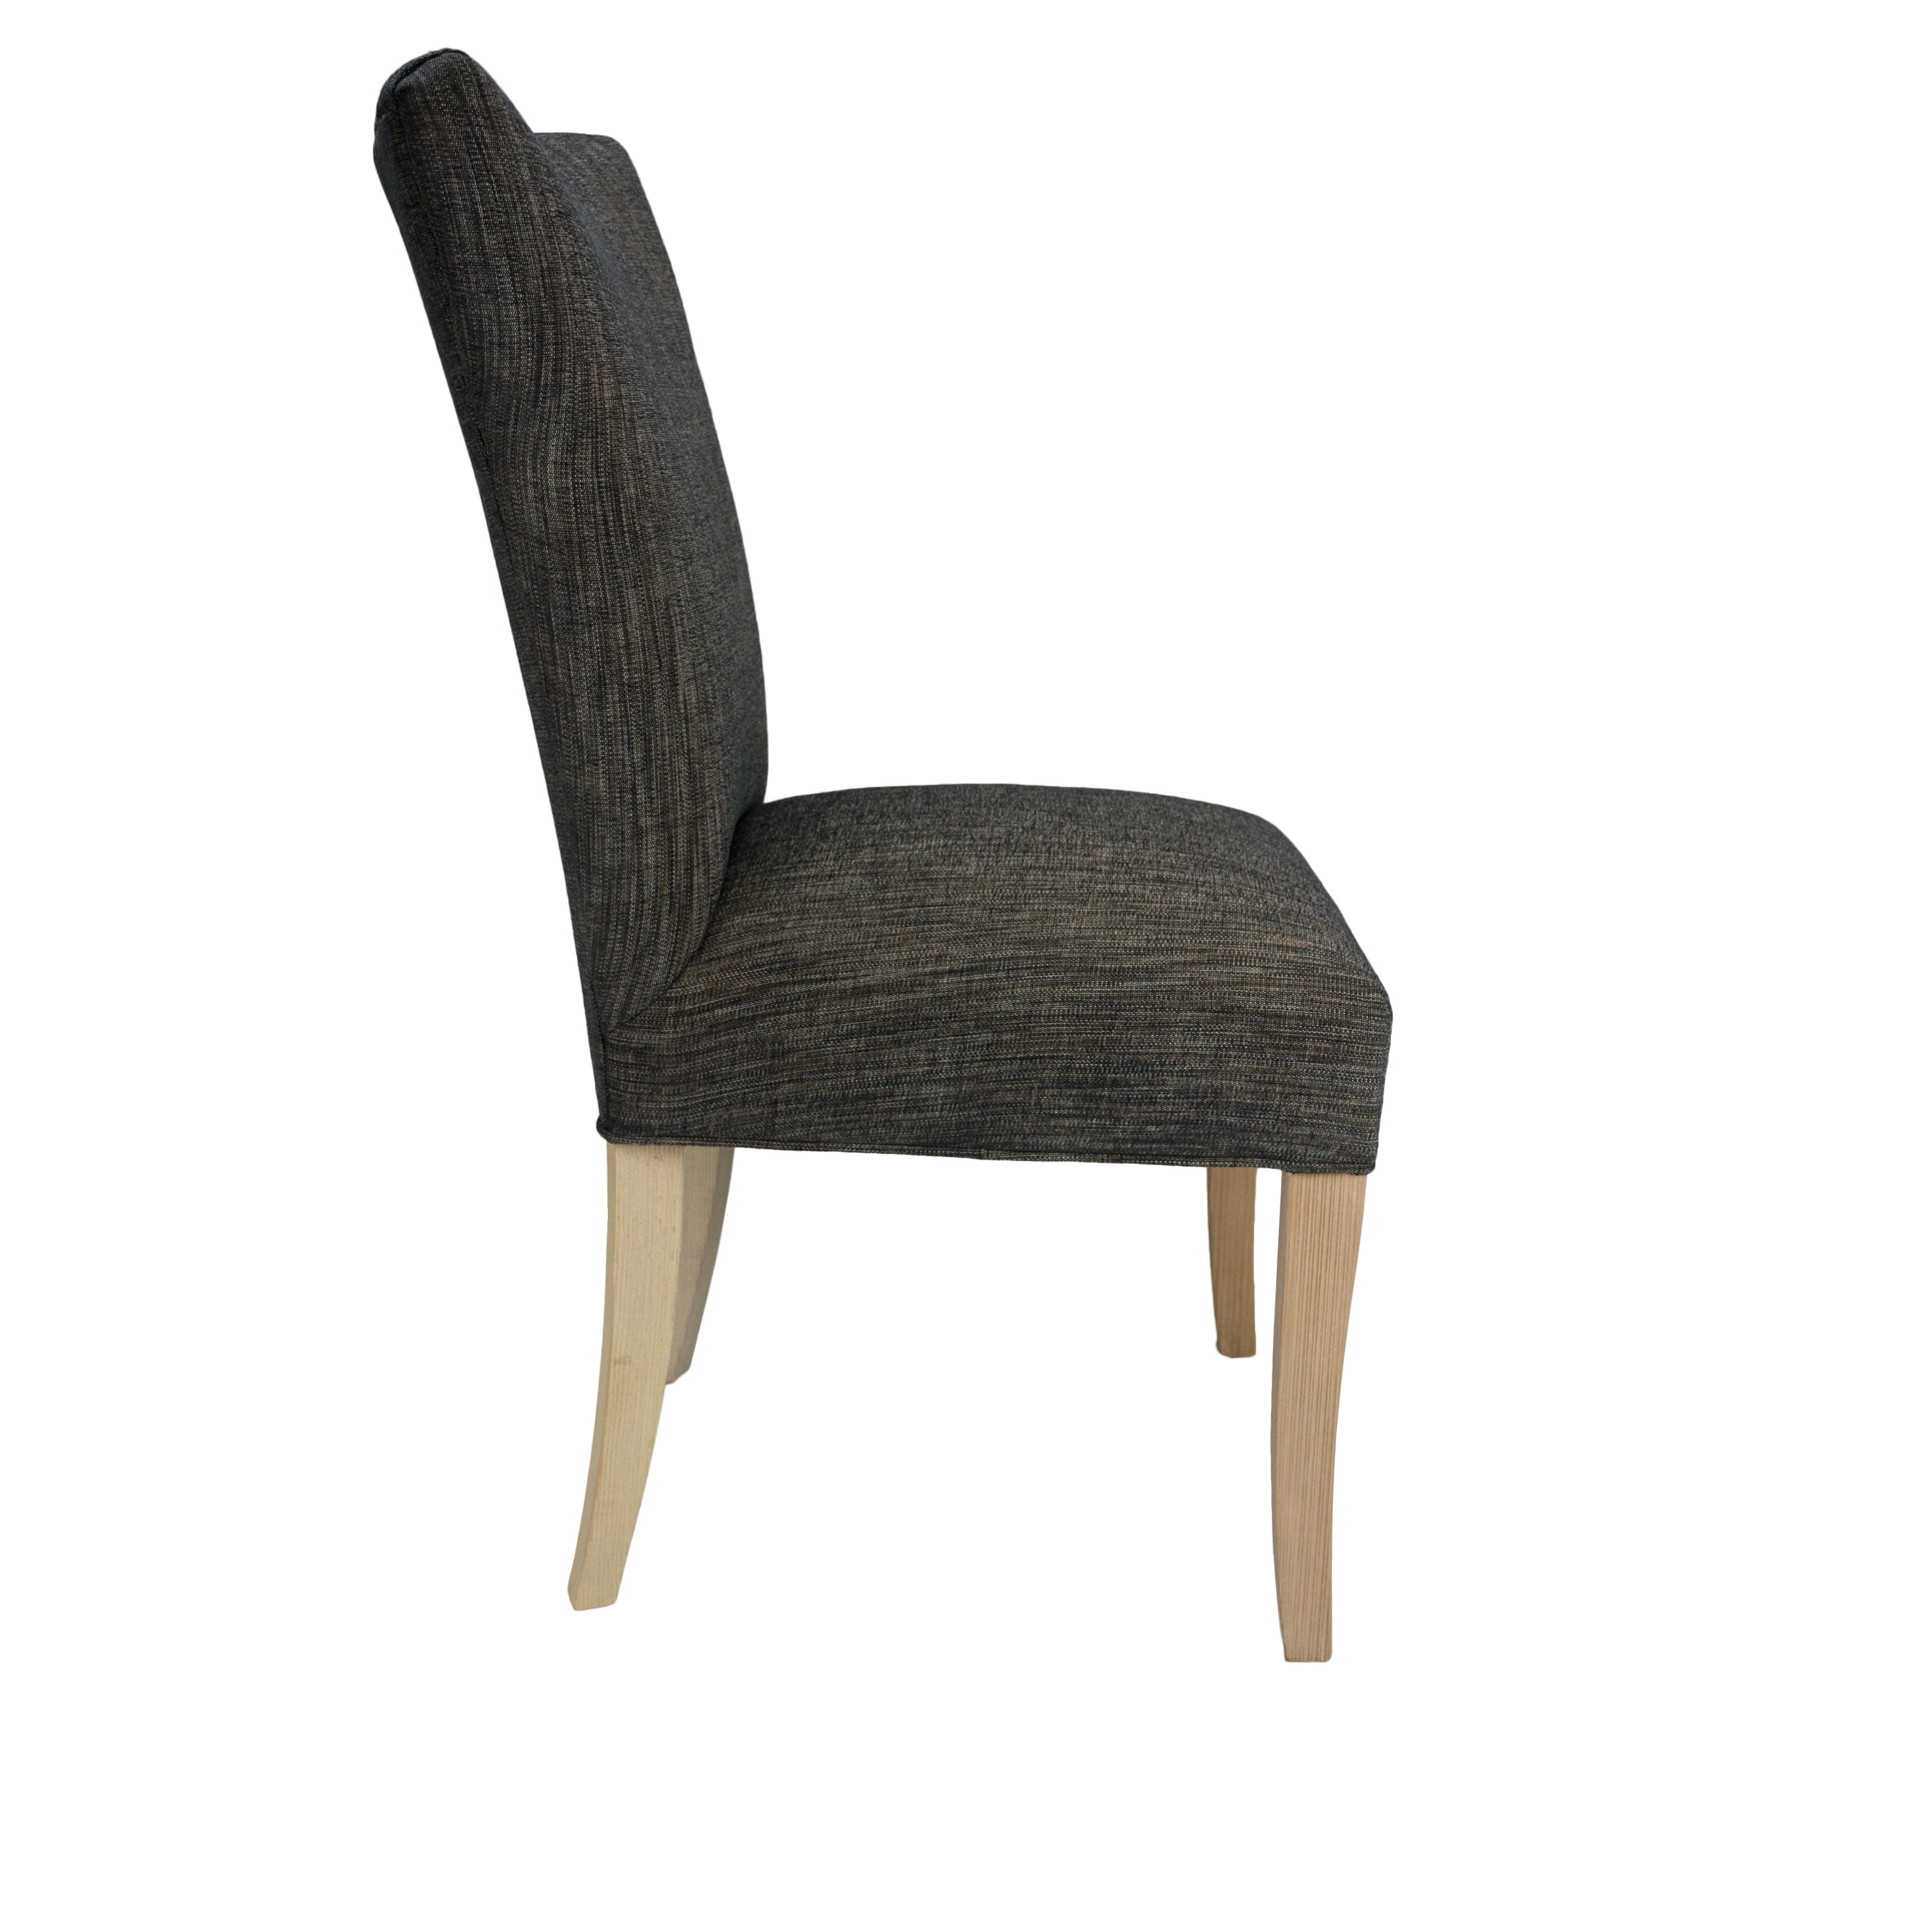 074f3220e194 Shop BELLA Lucky Phantom Natural Wooden Legs Upholstered Dining Chairs (Set  of 2) - 25 inches long x 20 inches wide x 36 inches high - On Sale - Free  ...